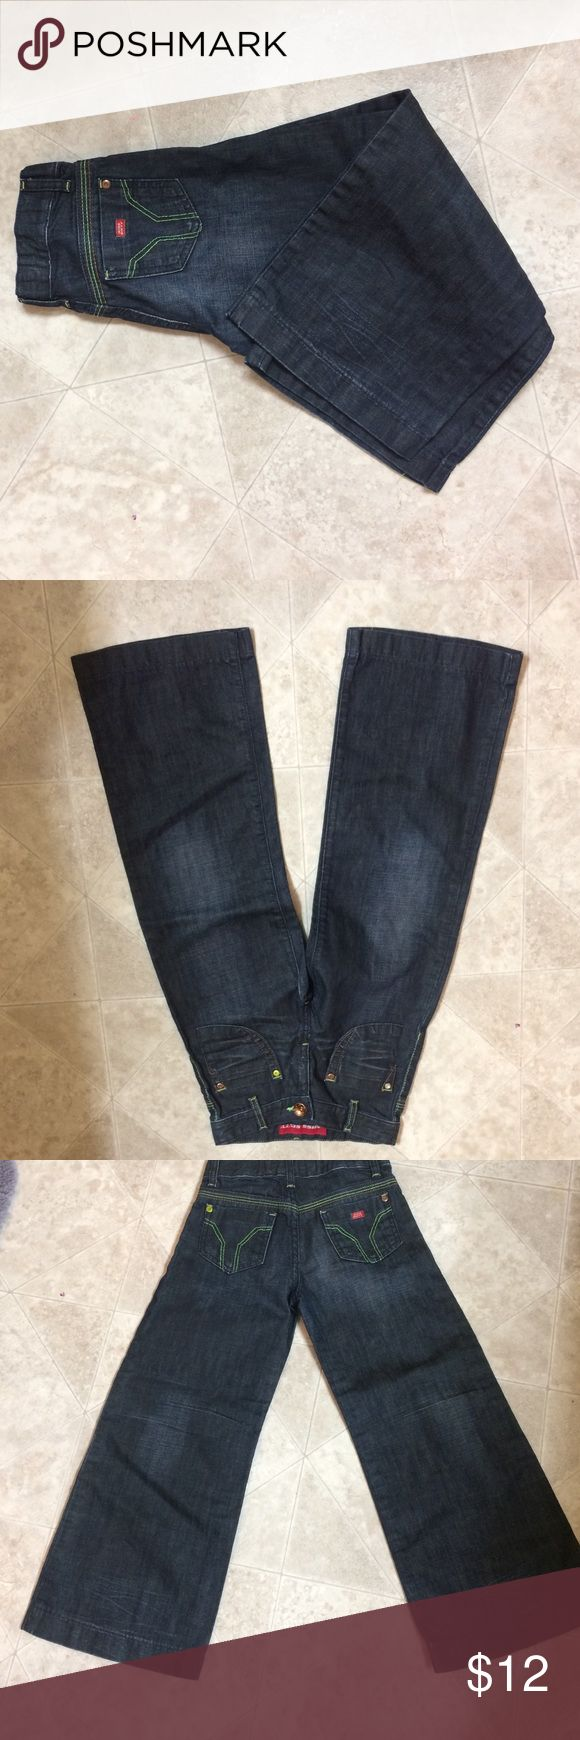 "Miss sixty jeans Kids miss sixty jeans size 6 years inseam approximately 20"" Miss Sixty Bottoms Jeans"